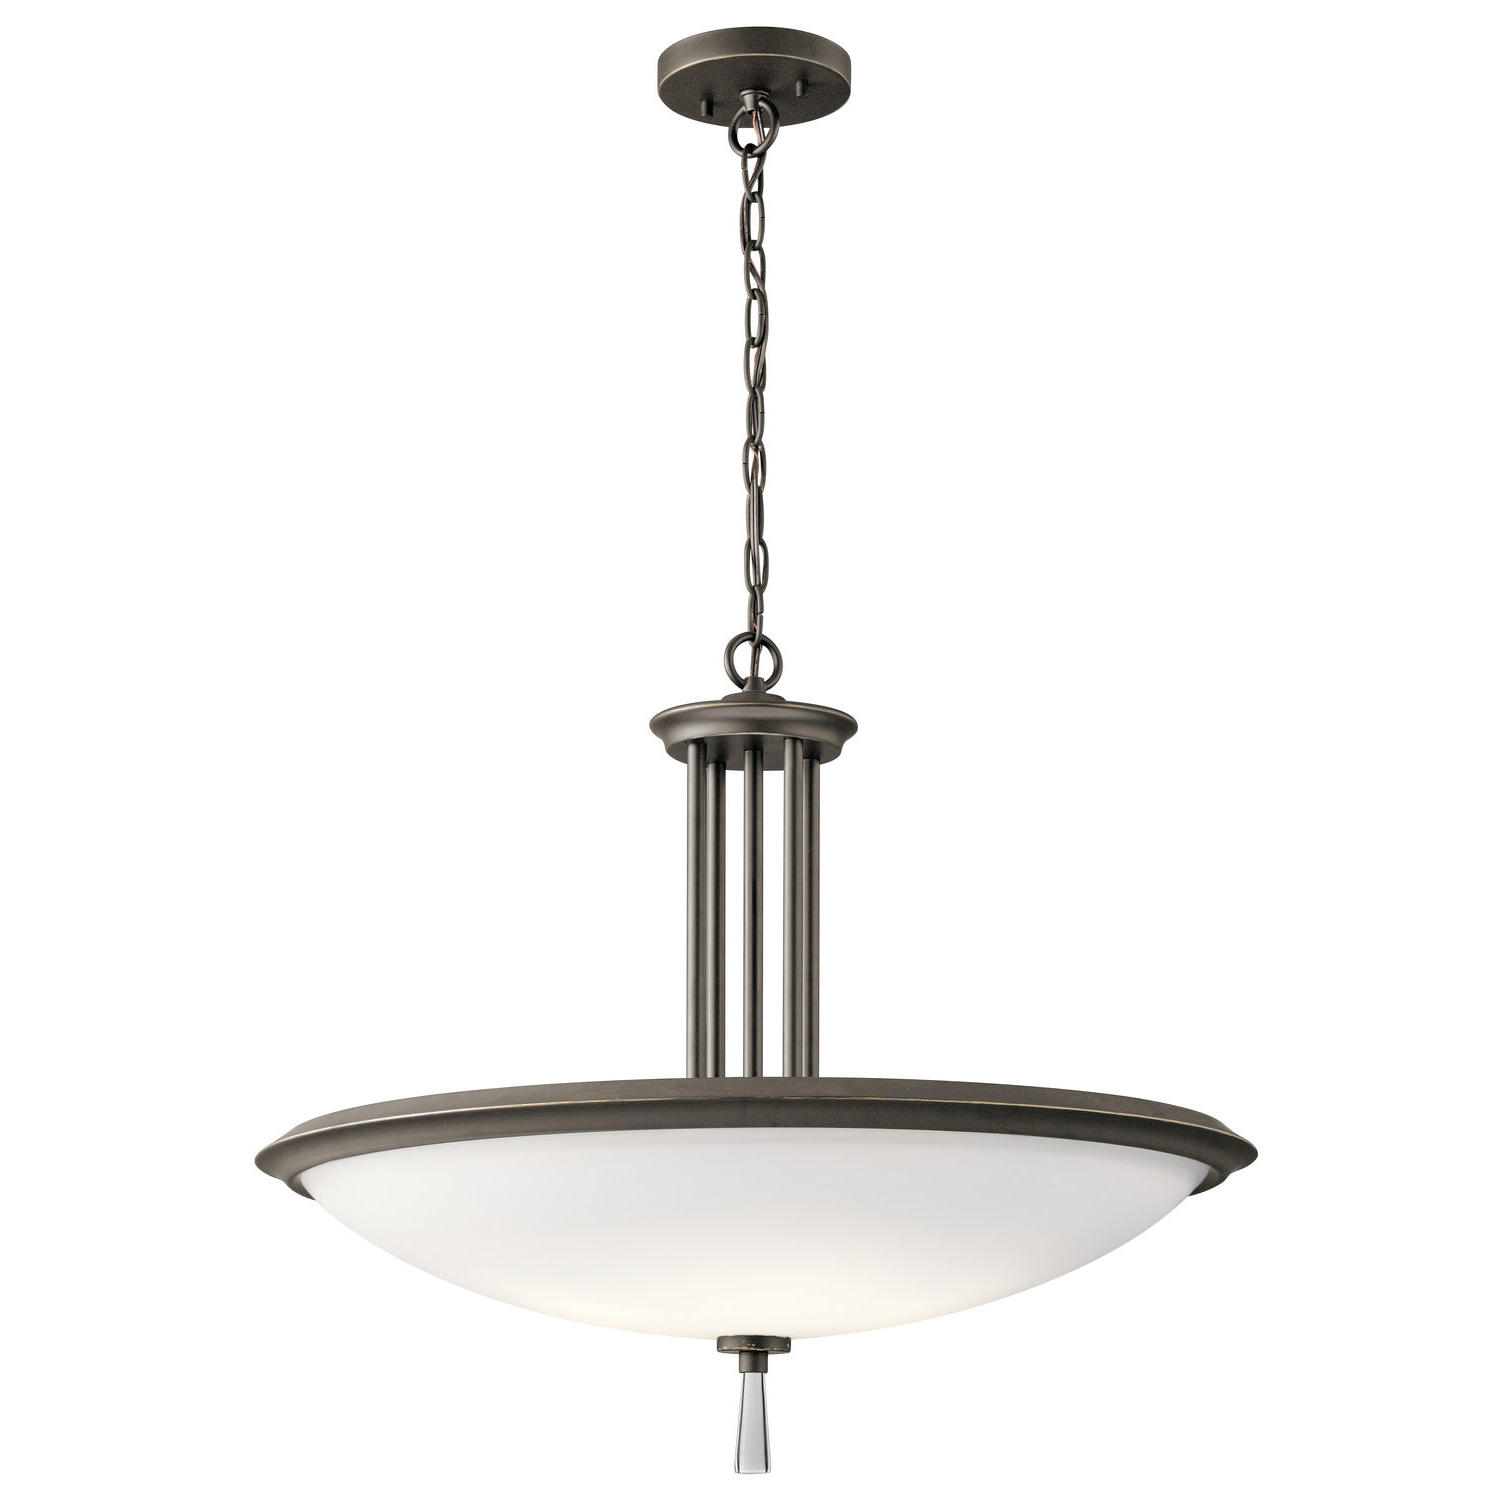 Best And Newest Marler 4 Light Bowl Pendant For Newent 3 Light Single Bowl Pendants (View 3 of 25)